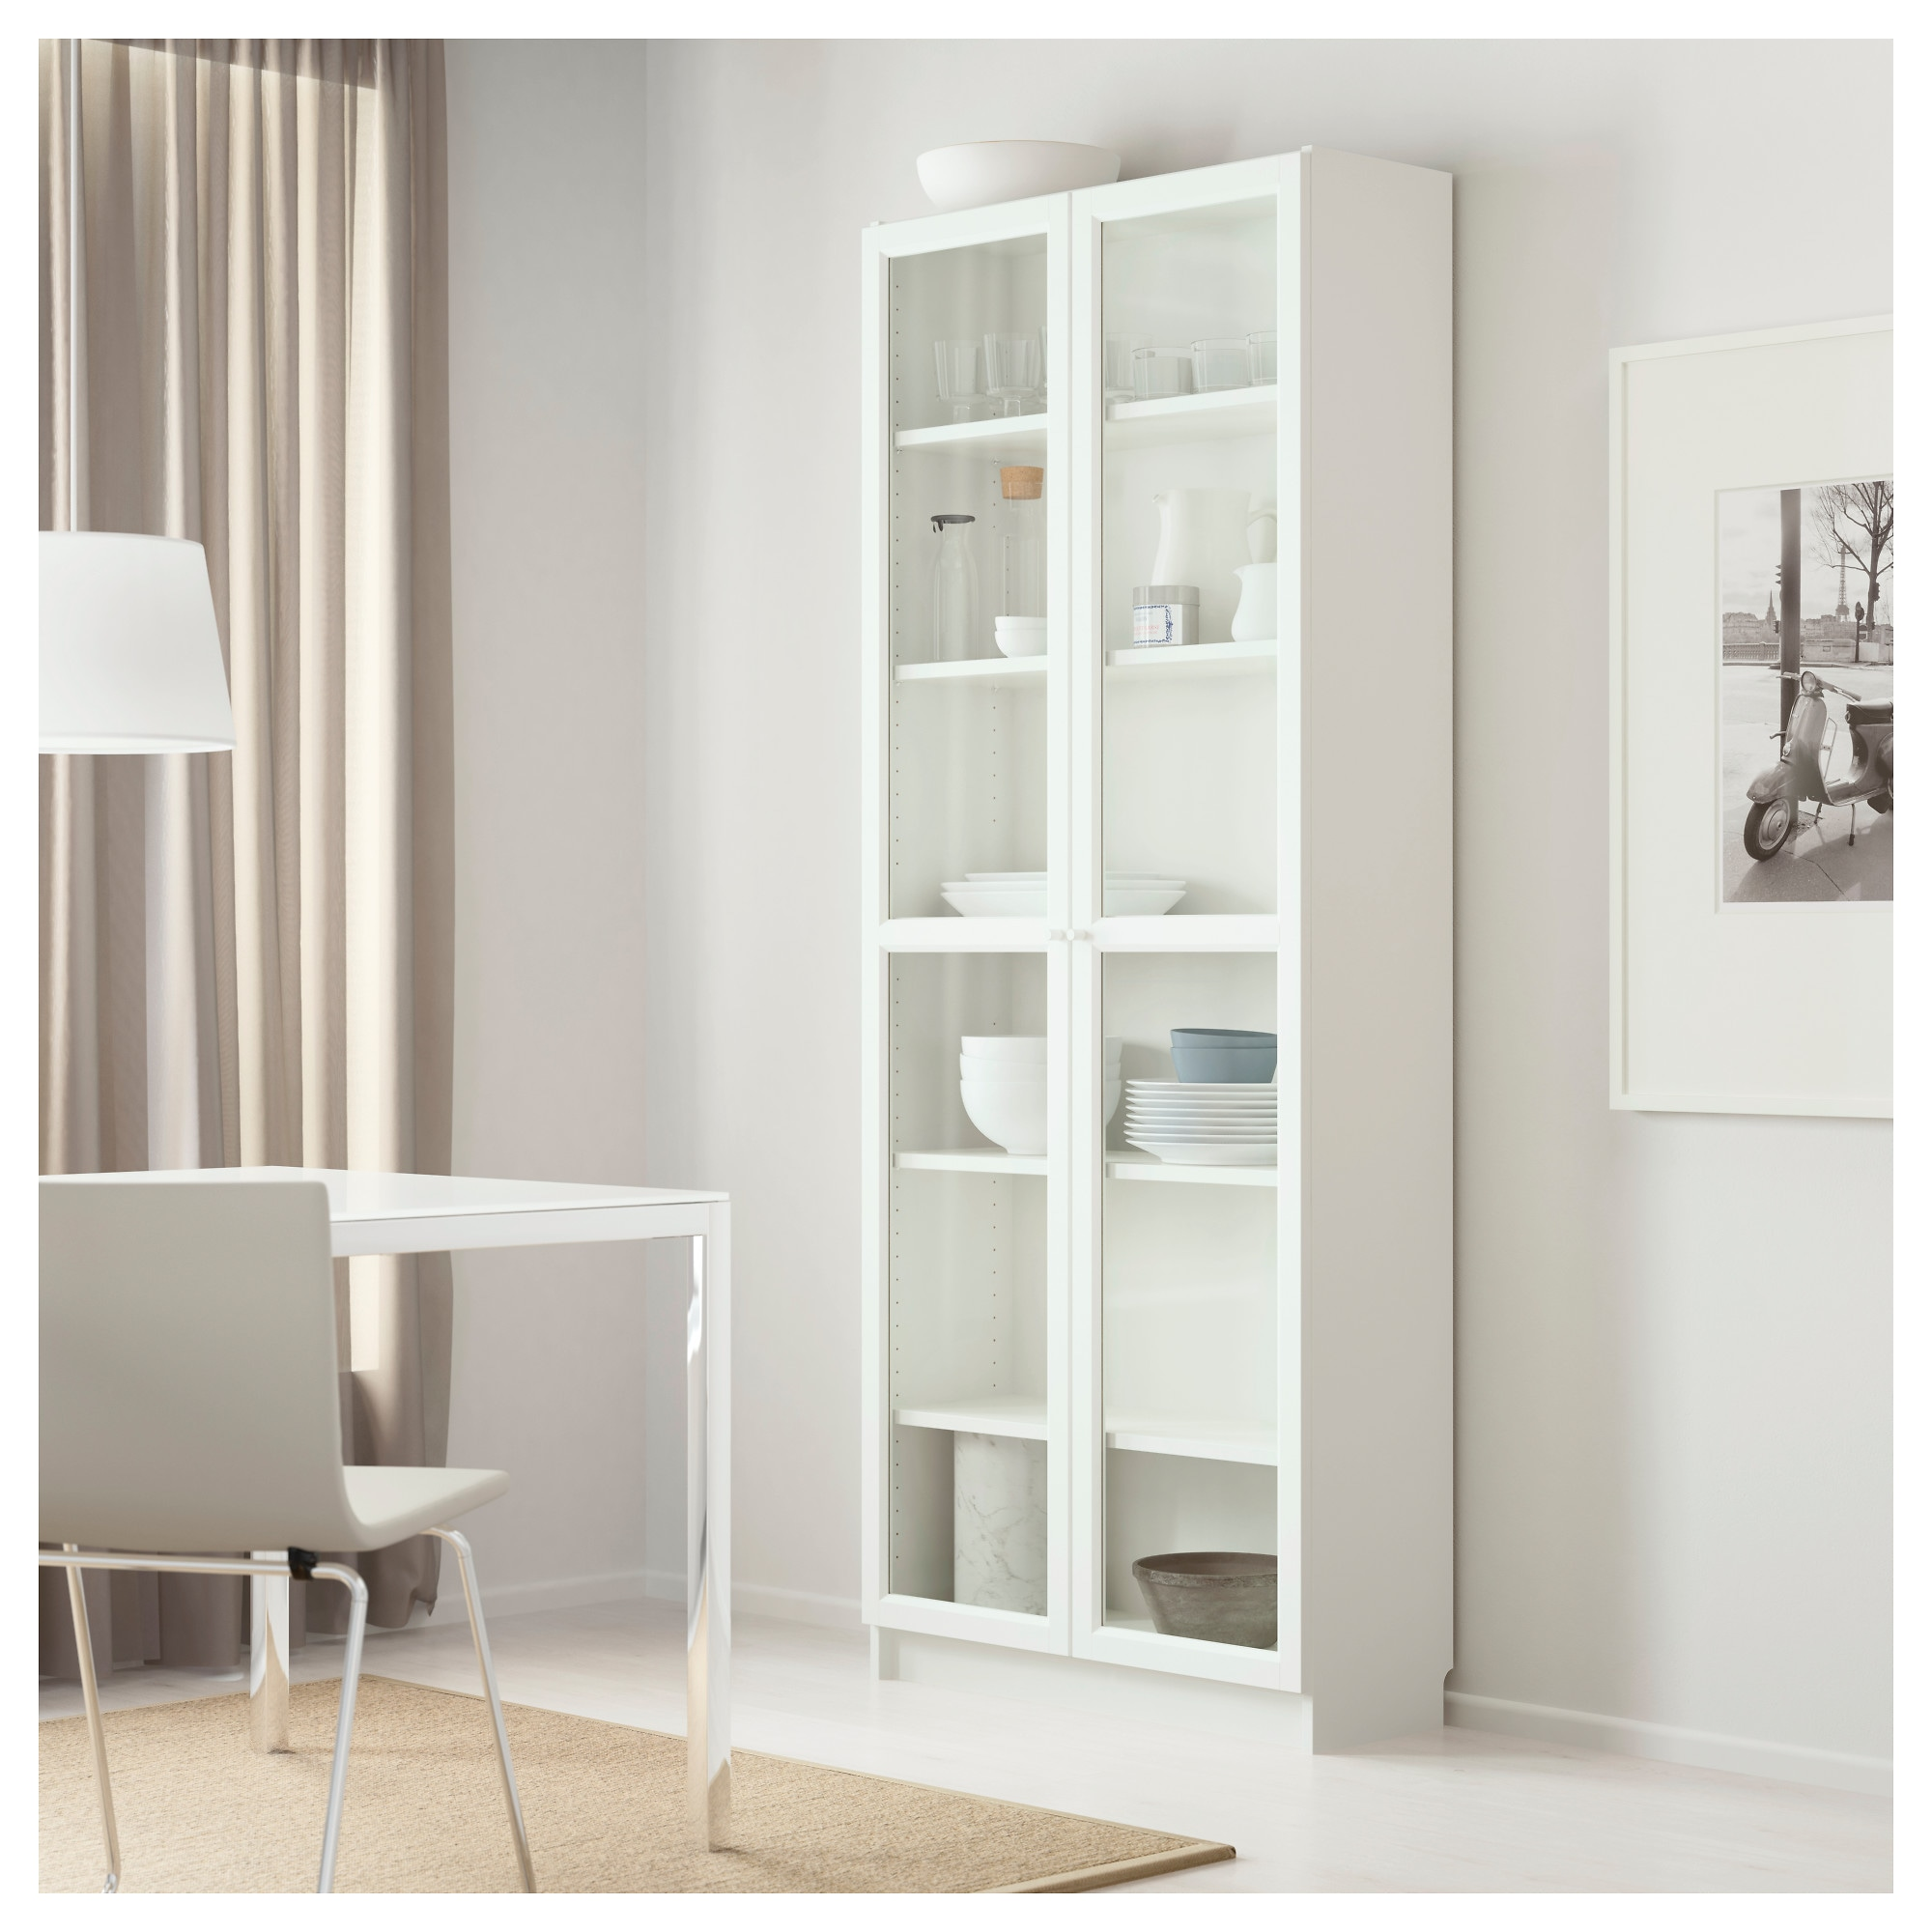 bookcase ikea you to at items and billy an shelf a wide some space treasured leave mirror height display extra for shoulder have so pin